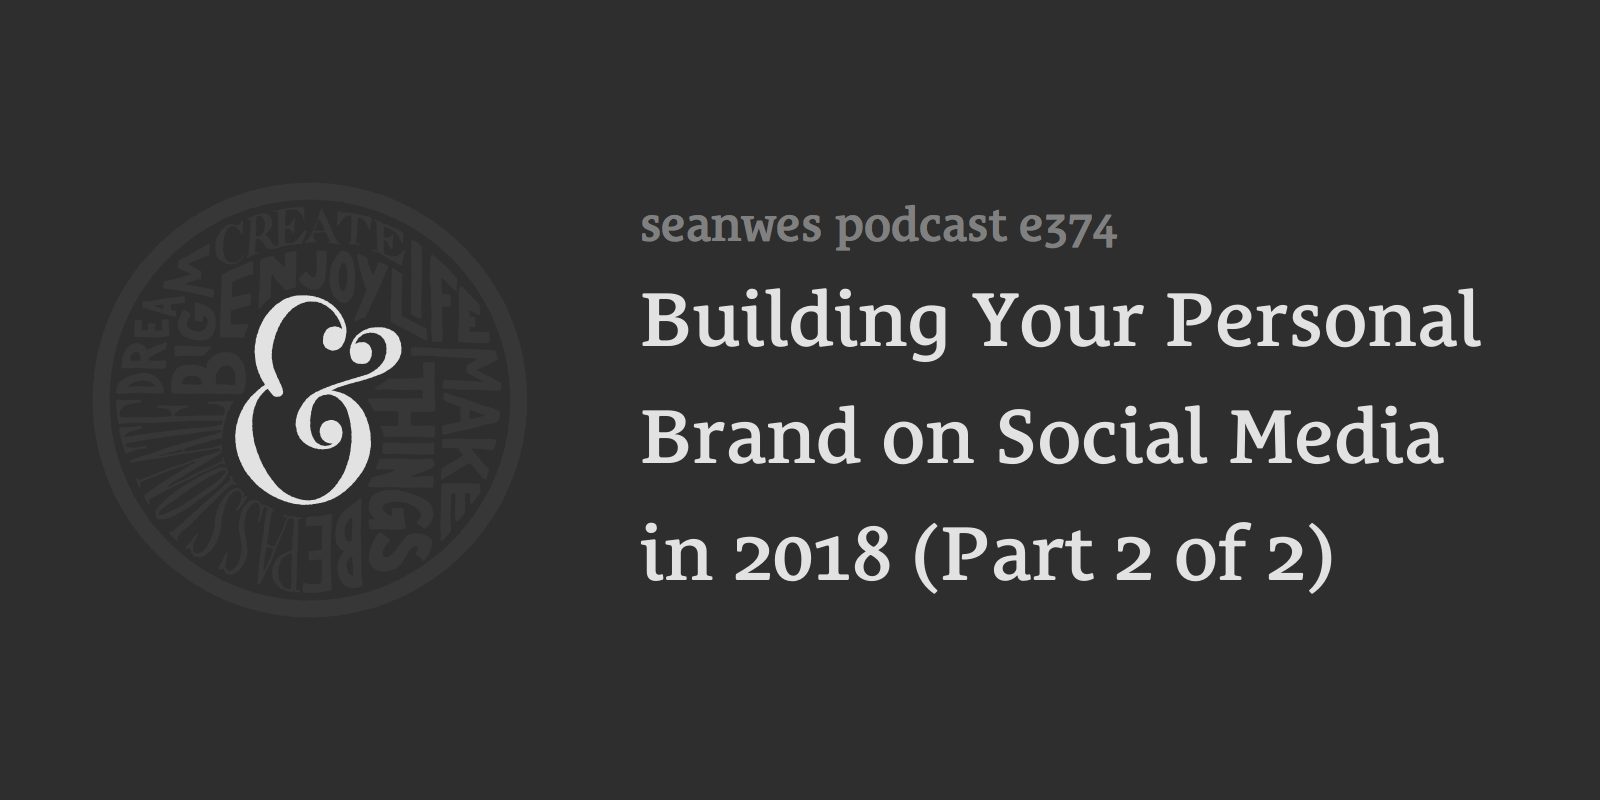 Building Your Personal Brand on Social Media in 2018 (Part 2 of 2)